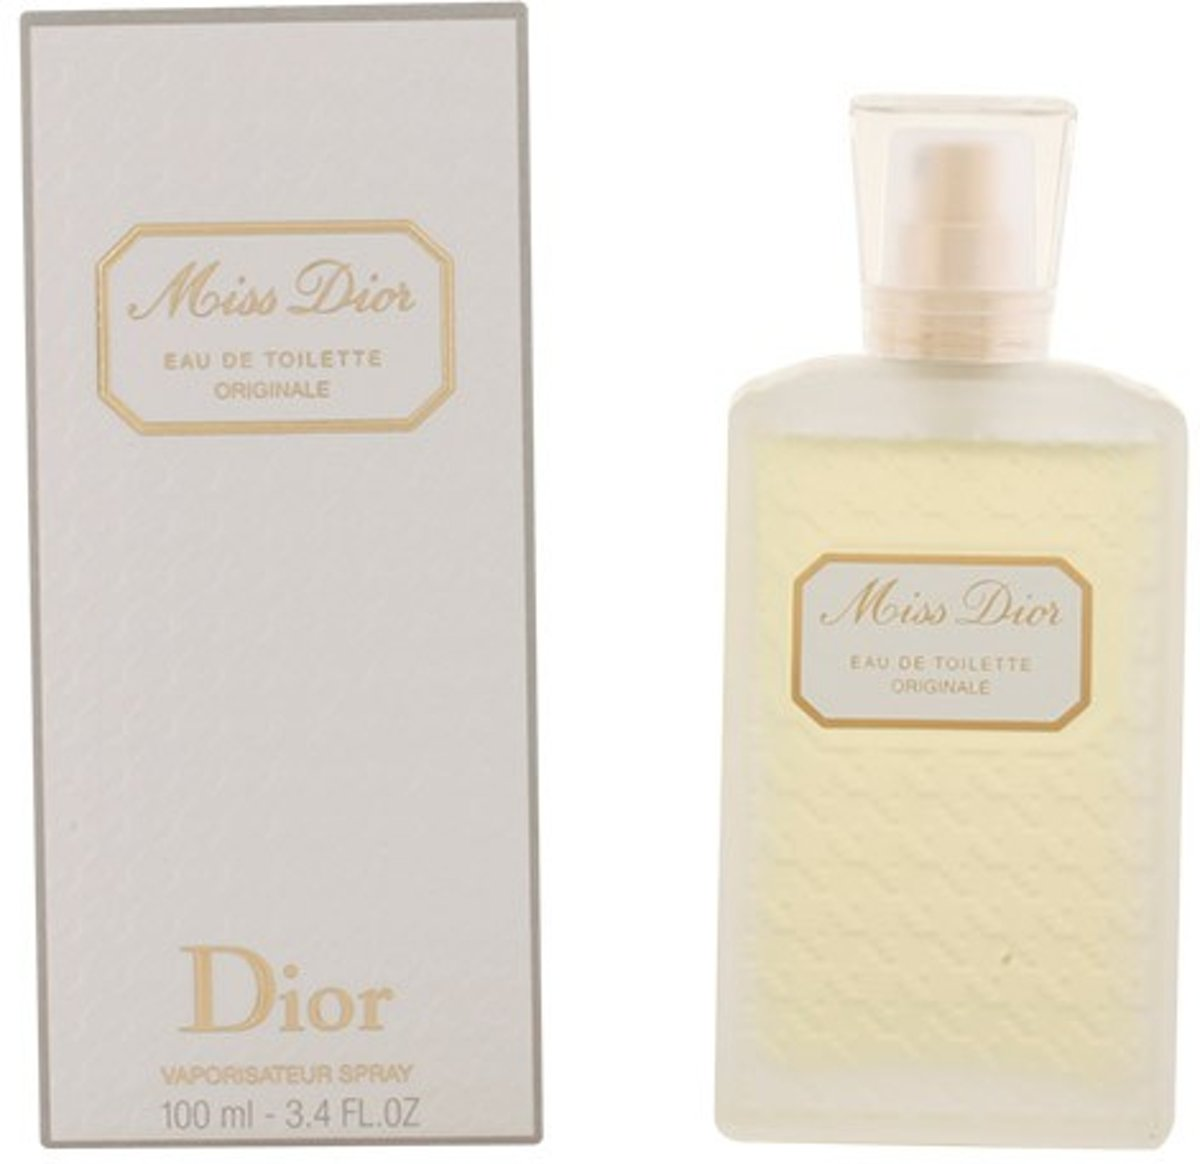 MULTI BUNDEL 2 stuks MISS DIOR Eau de Toilette originale Spray 100 ml